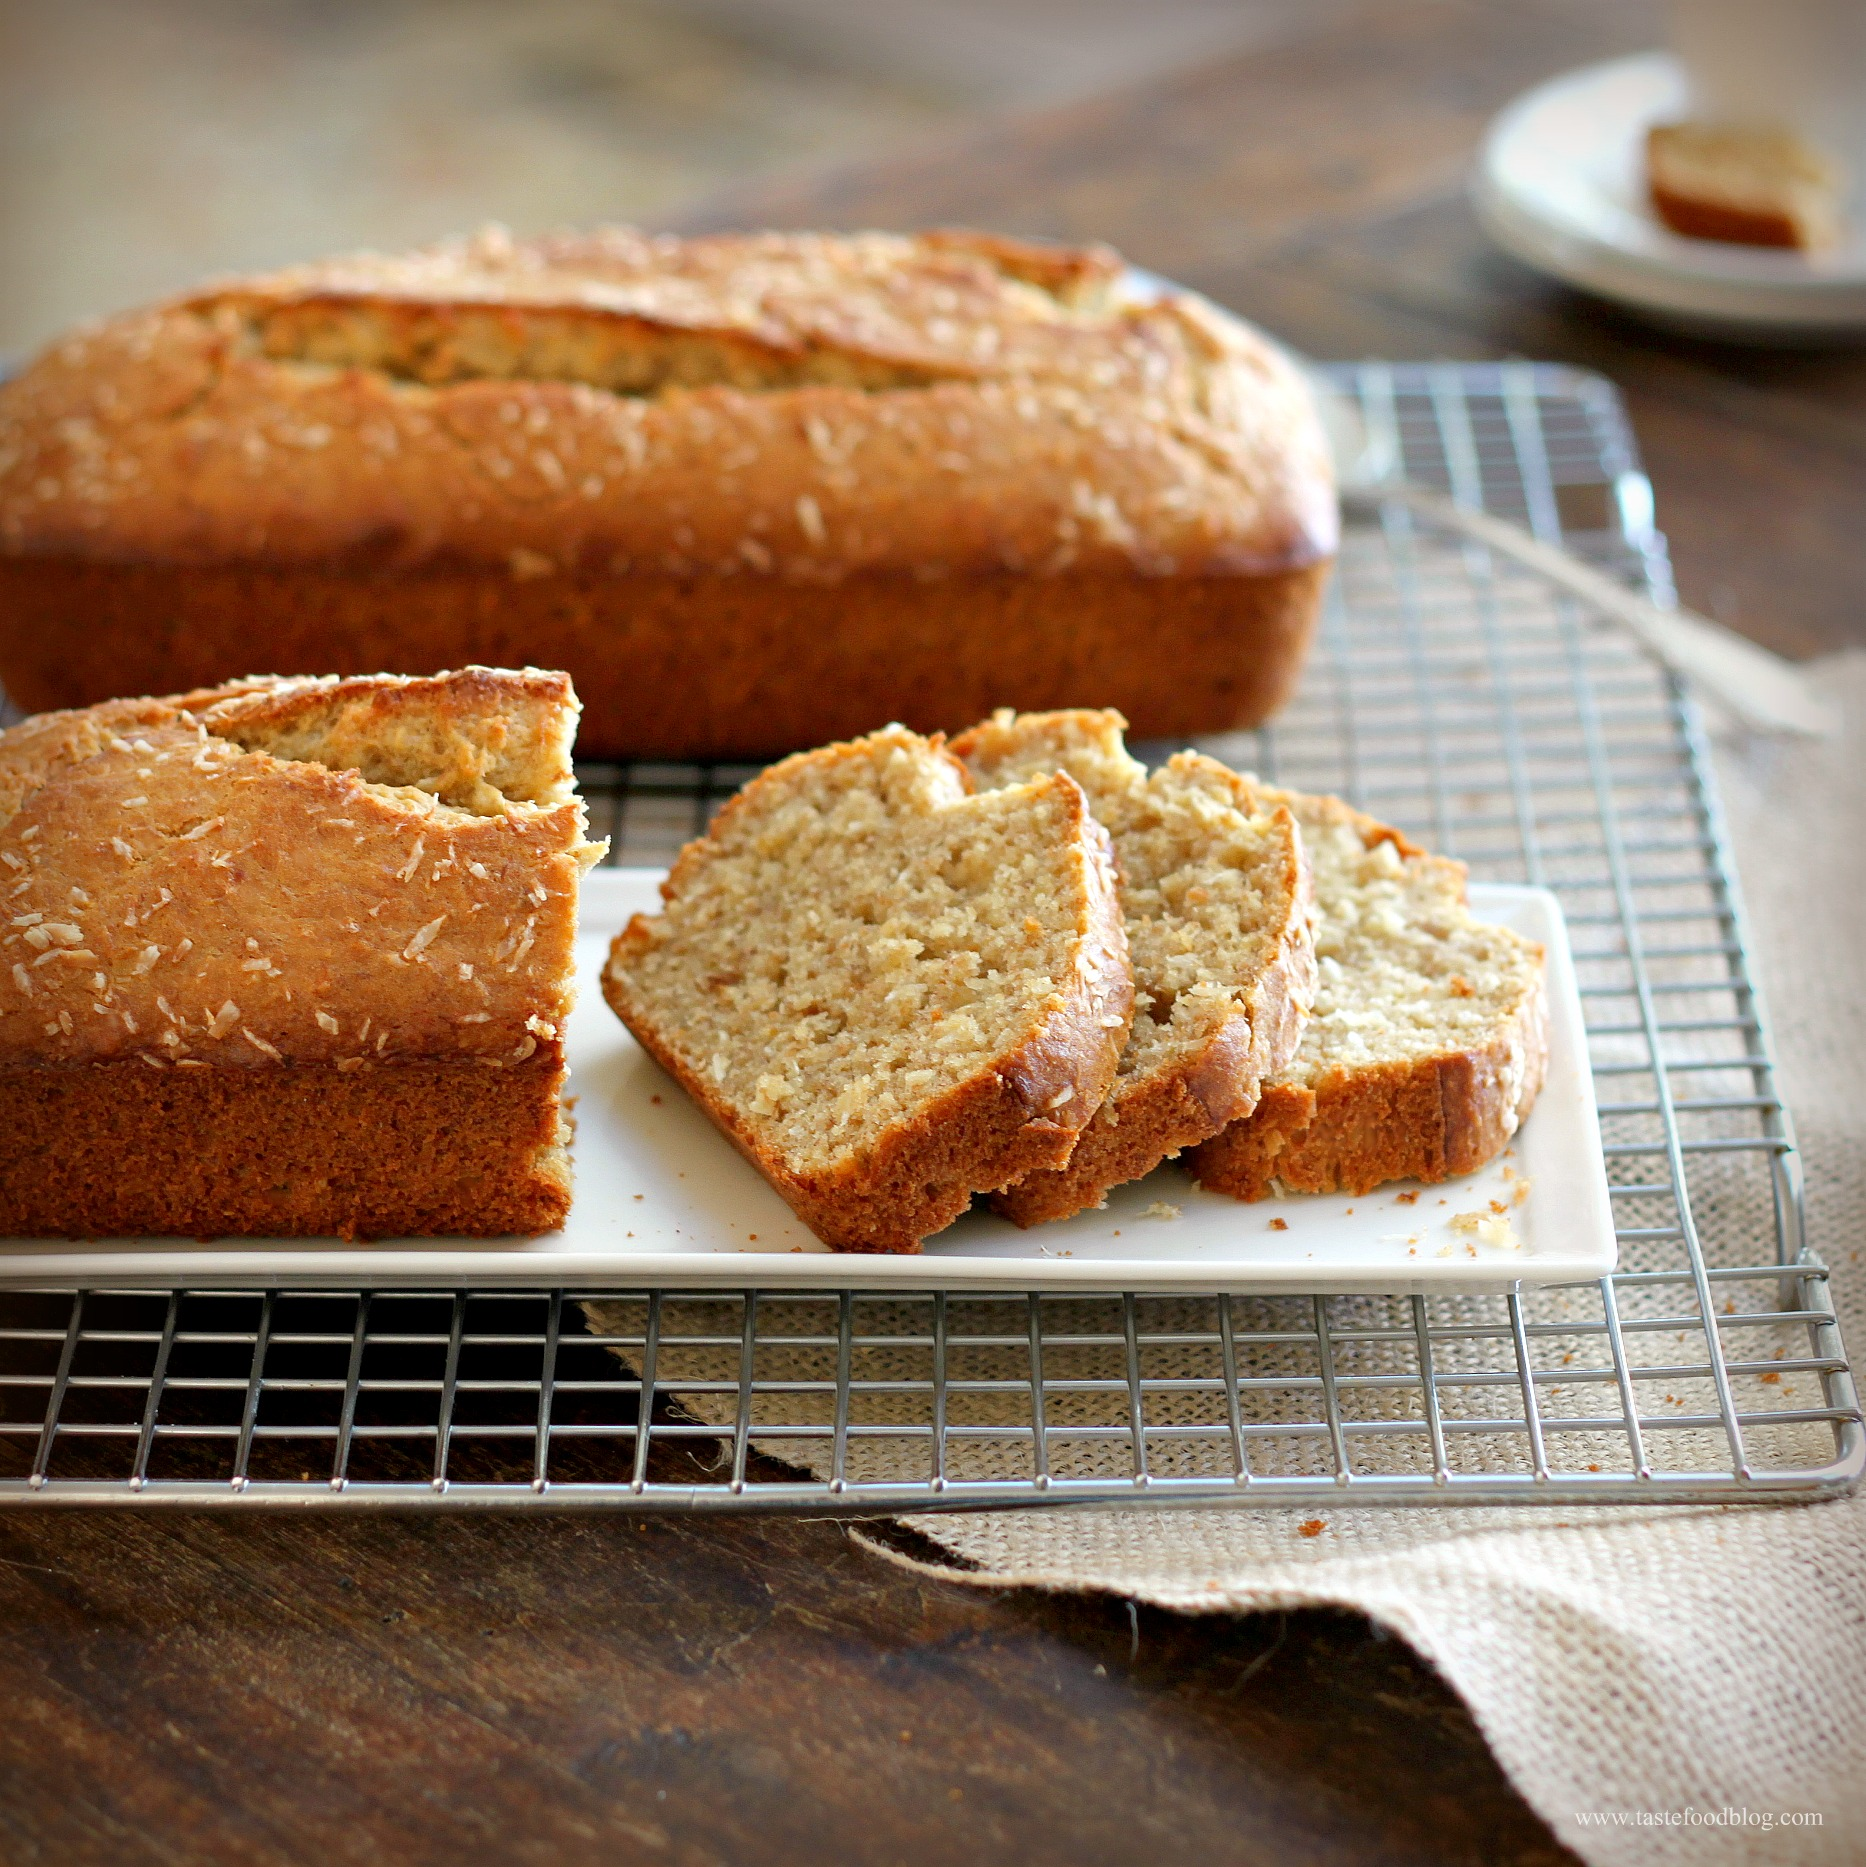 Chef Dine's Banana Quick Bread